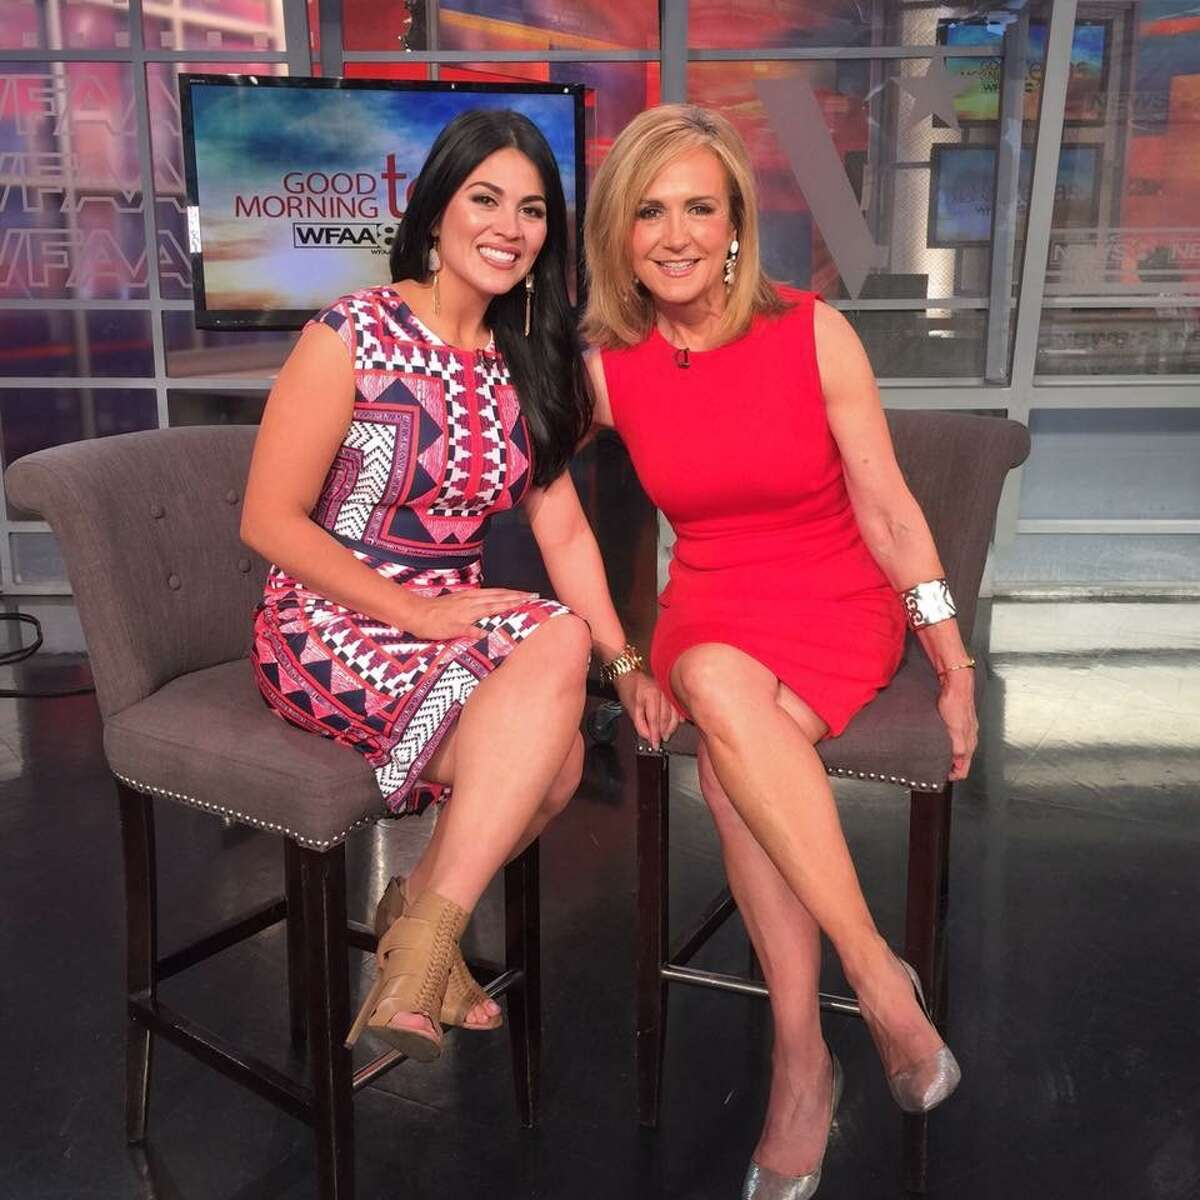 Alanna Sarabia, previously a staple of San Antonio's WOAI-TV, said she has developed a nice chemistry with her new air partner Jane McGarry (right), co-host on WFAA-TV's 'Good Morning Texas' in Dallas.